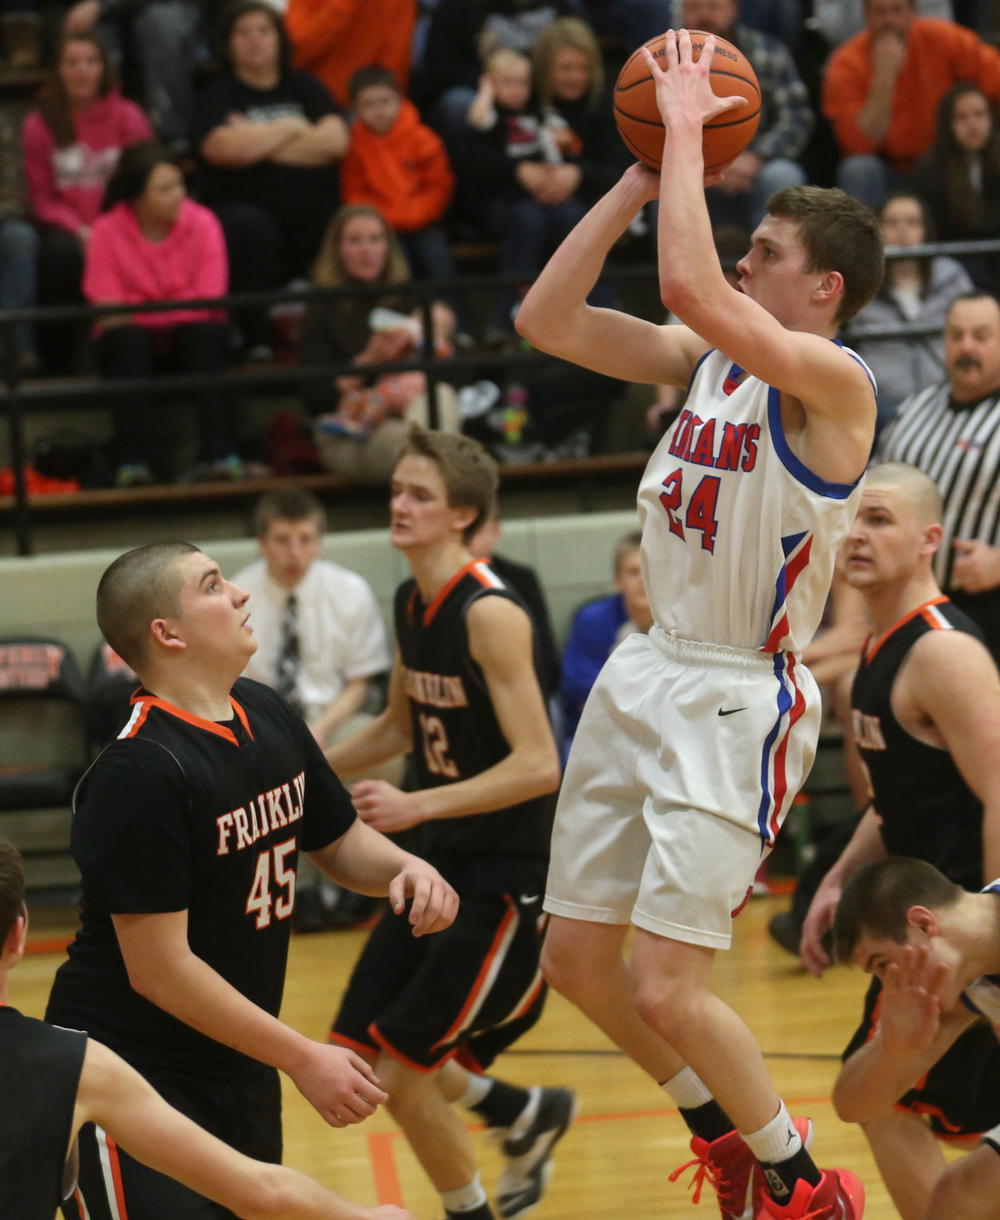 Pawnee player Cade Puzey puts up two points. Franklin defeated Pawnee 61-39 during a semifinal game at the 1A Waverly Regional Boys Basketball Tournament held at Waverly Grade School gymnasium on Wednesday evening, Feb. 25, 2015. David Spencer/The State Journal-Register